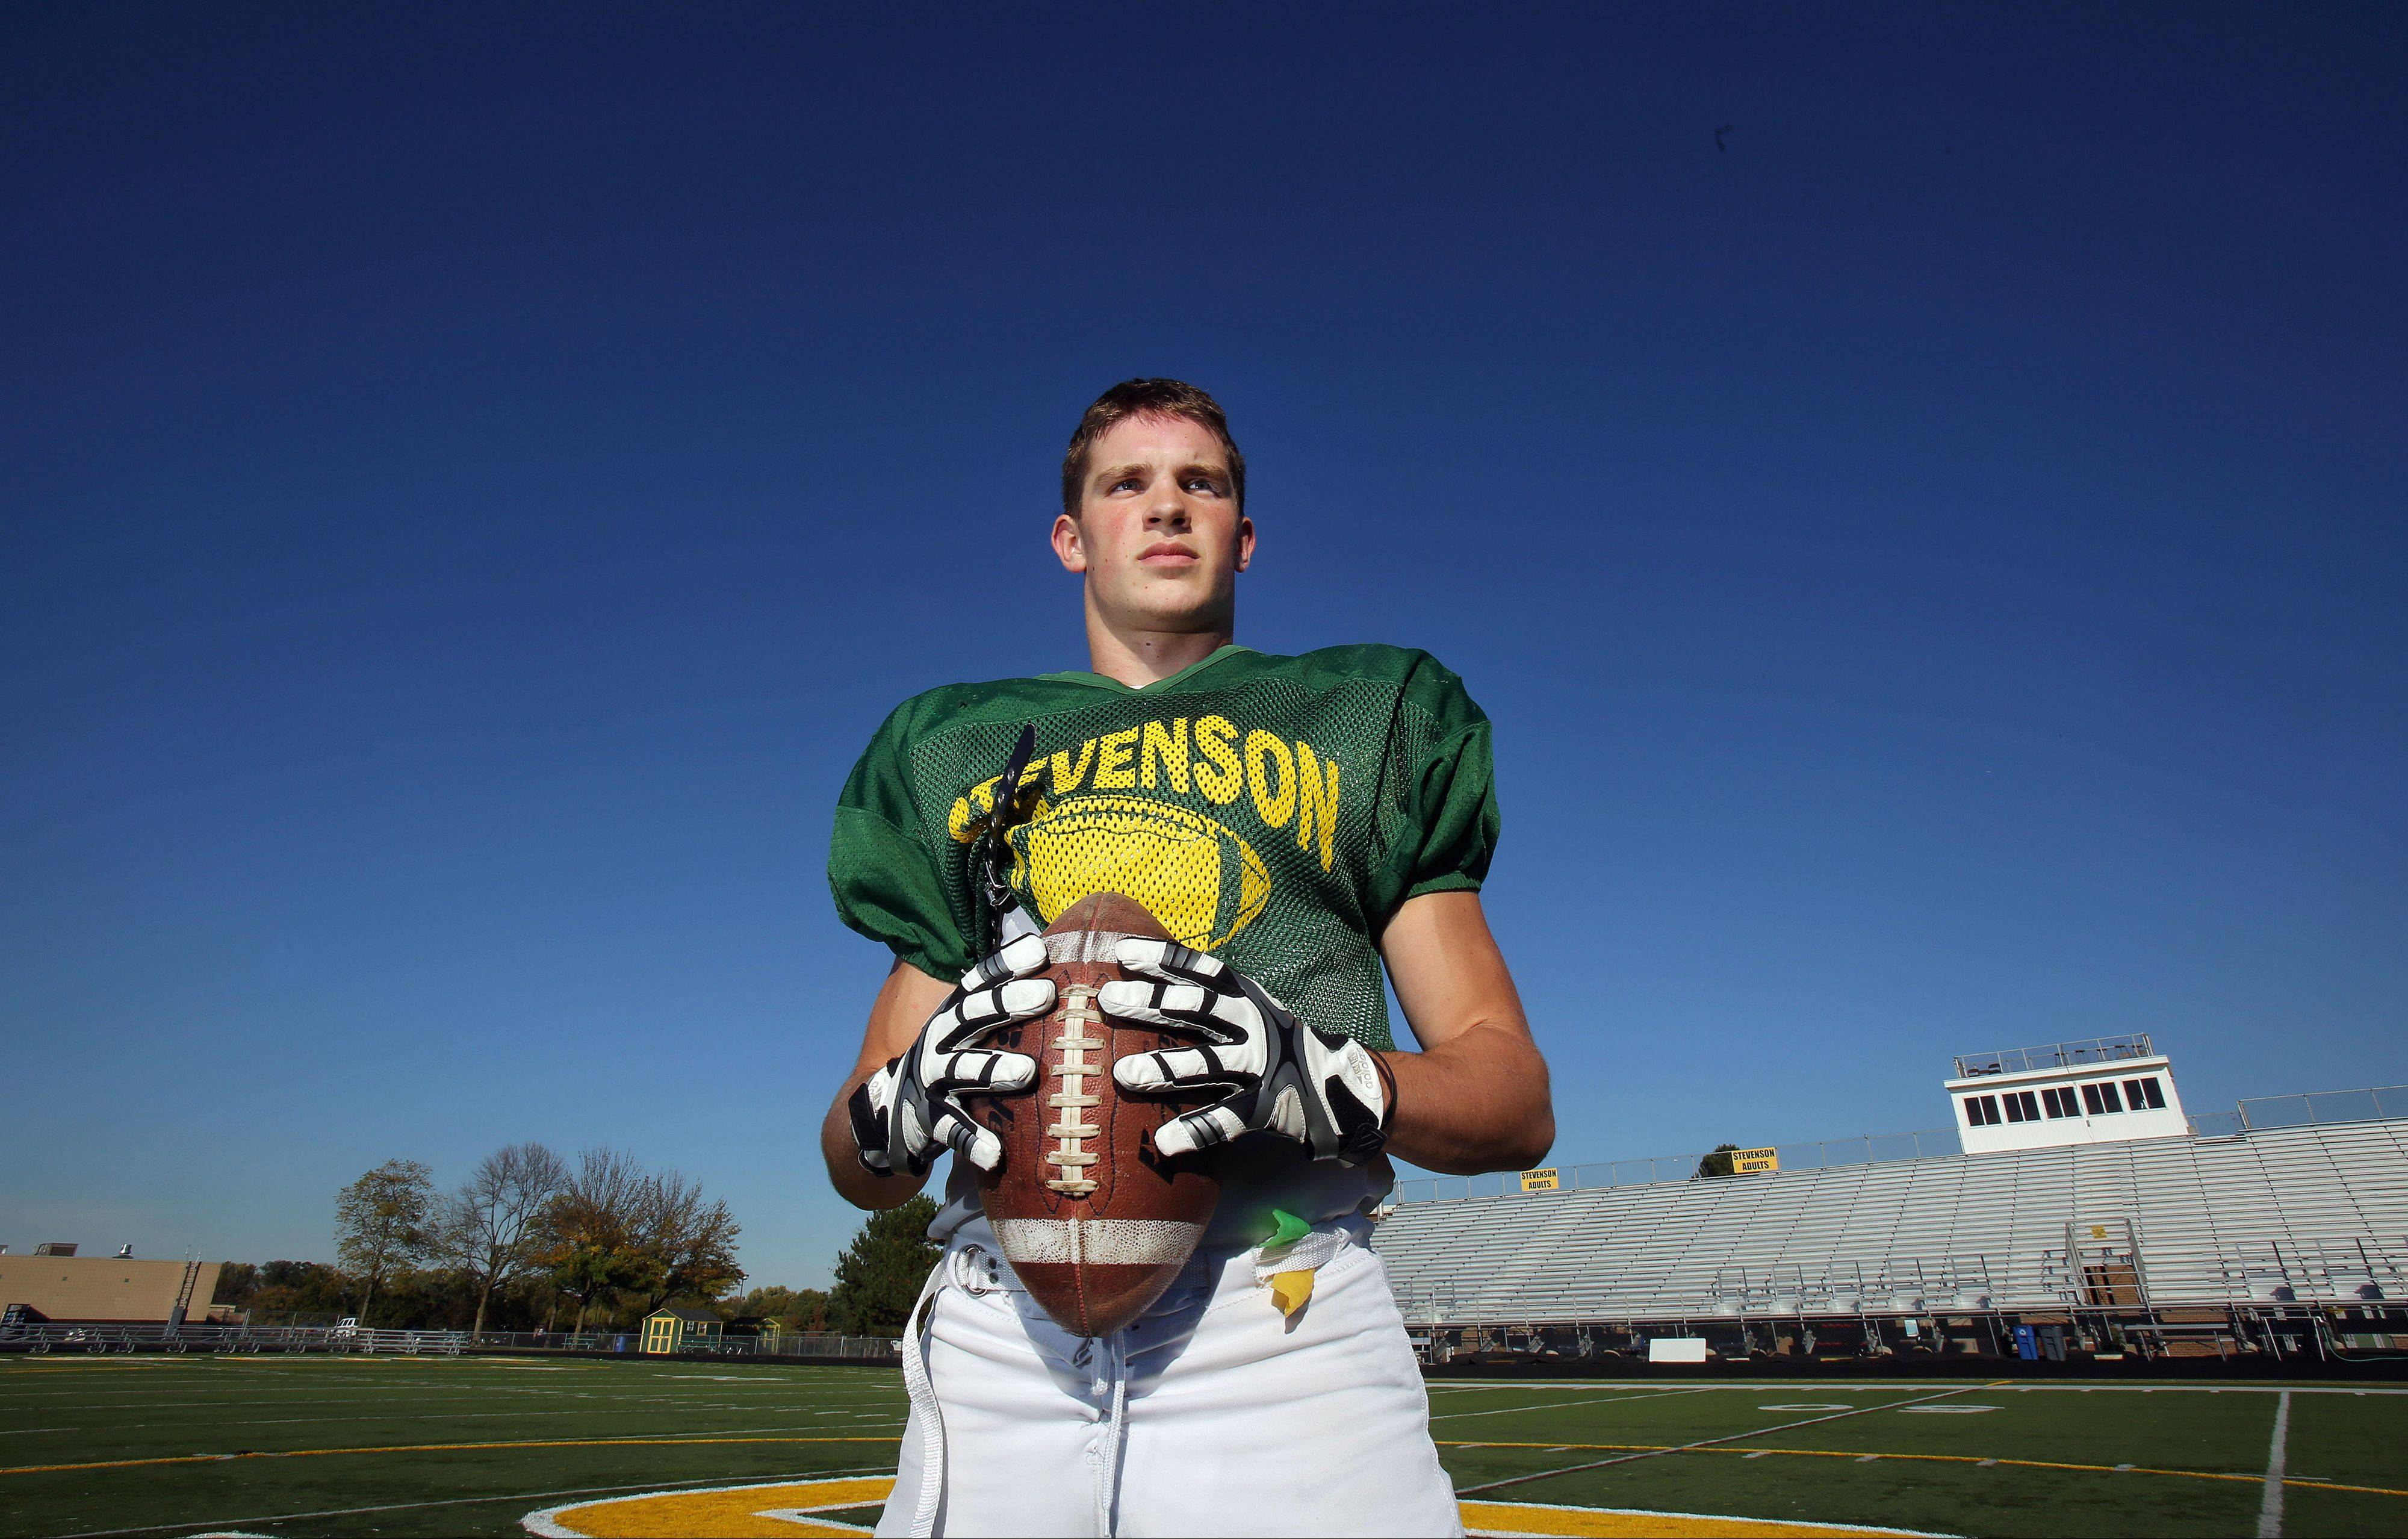 Stevenson receiver and defensive back Matt Morrissey has committed to Michigan State, extending a family legacy of high athletic achievement.